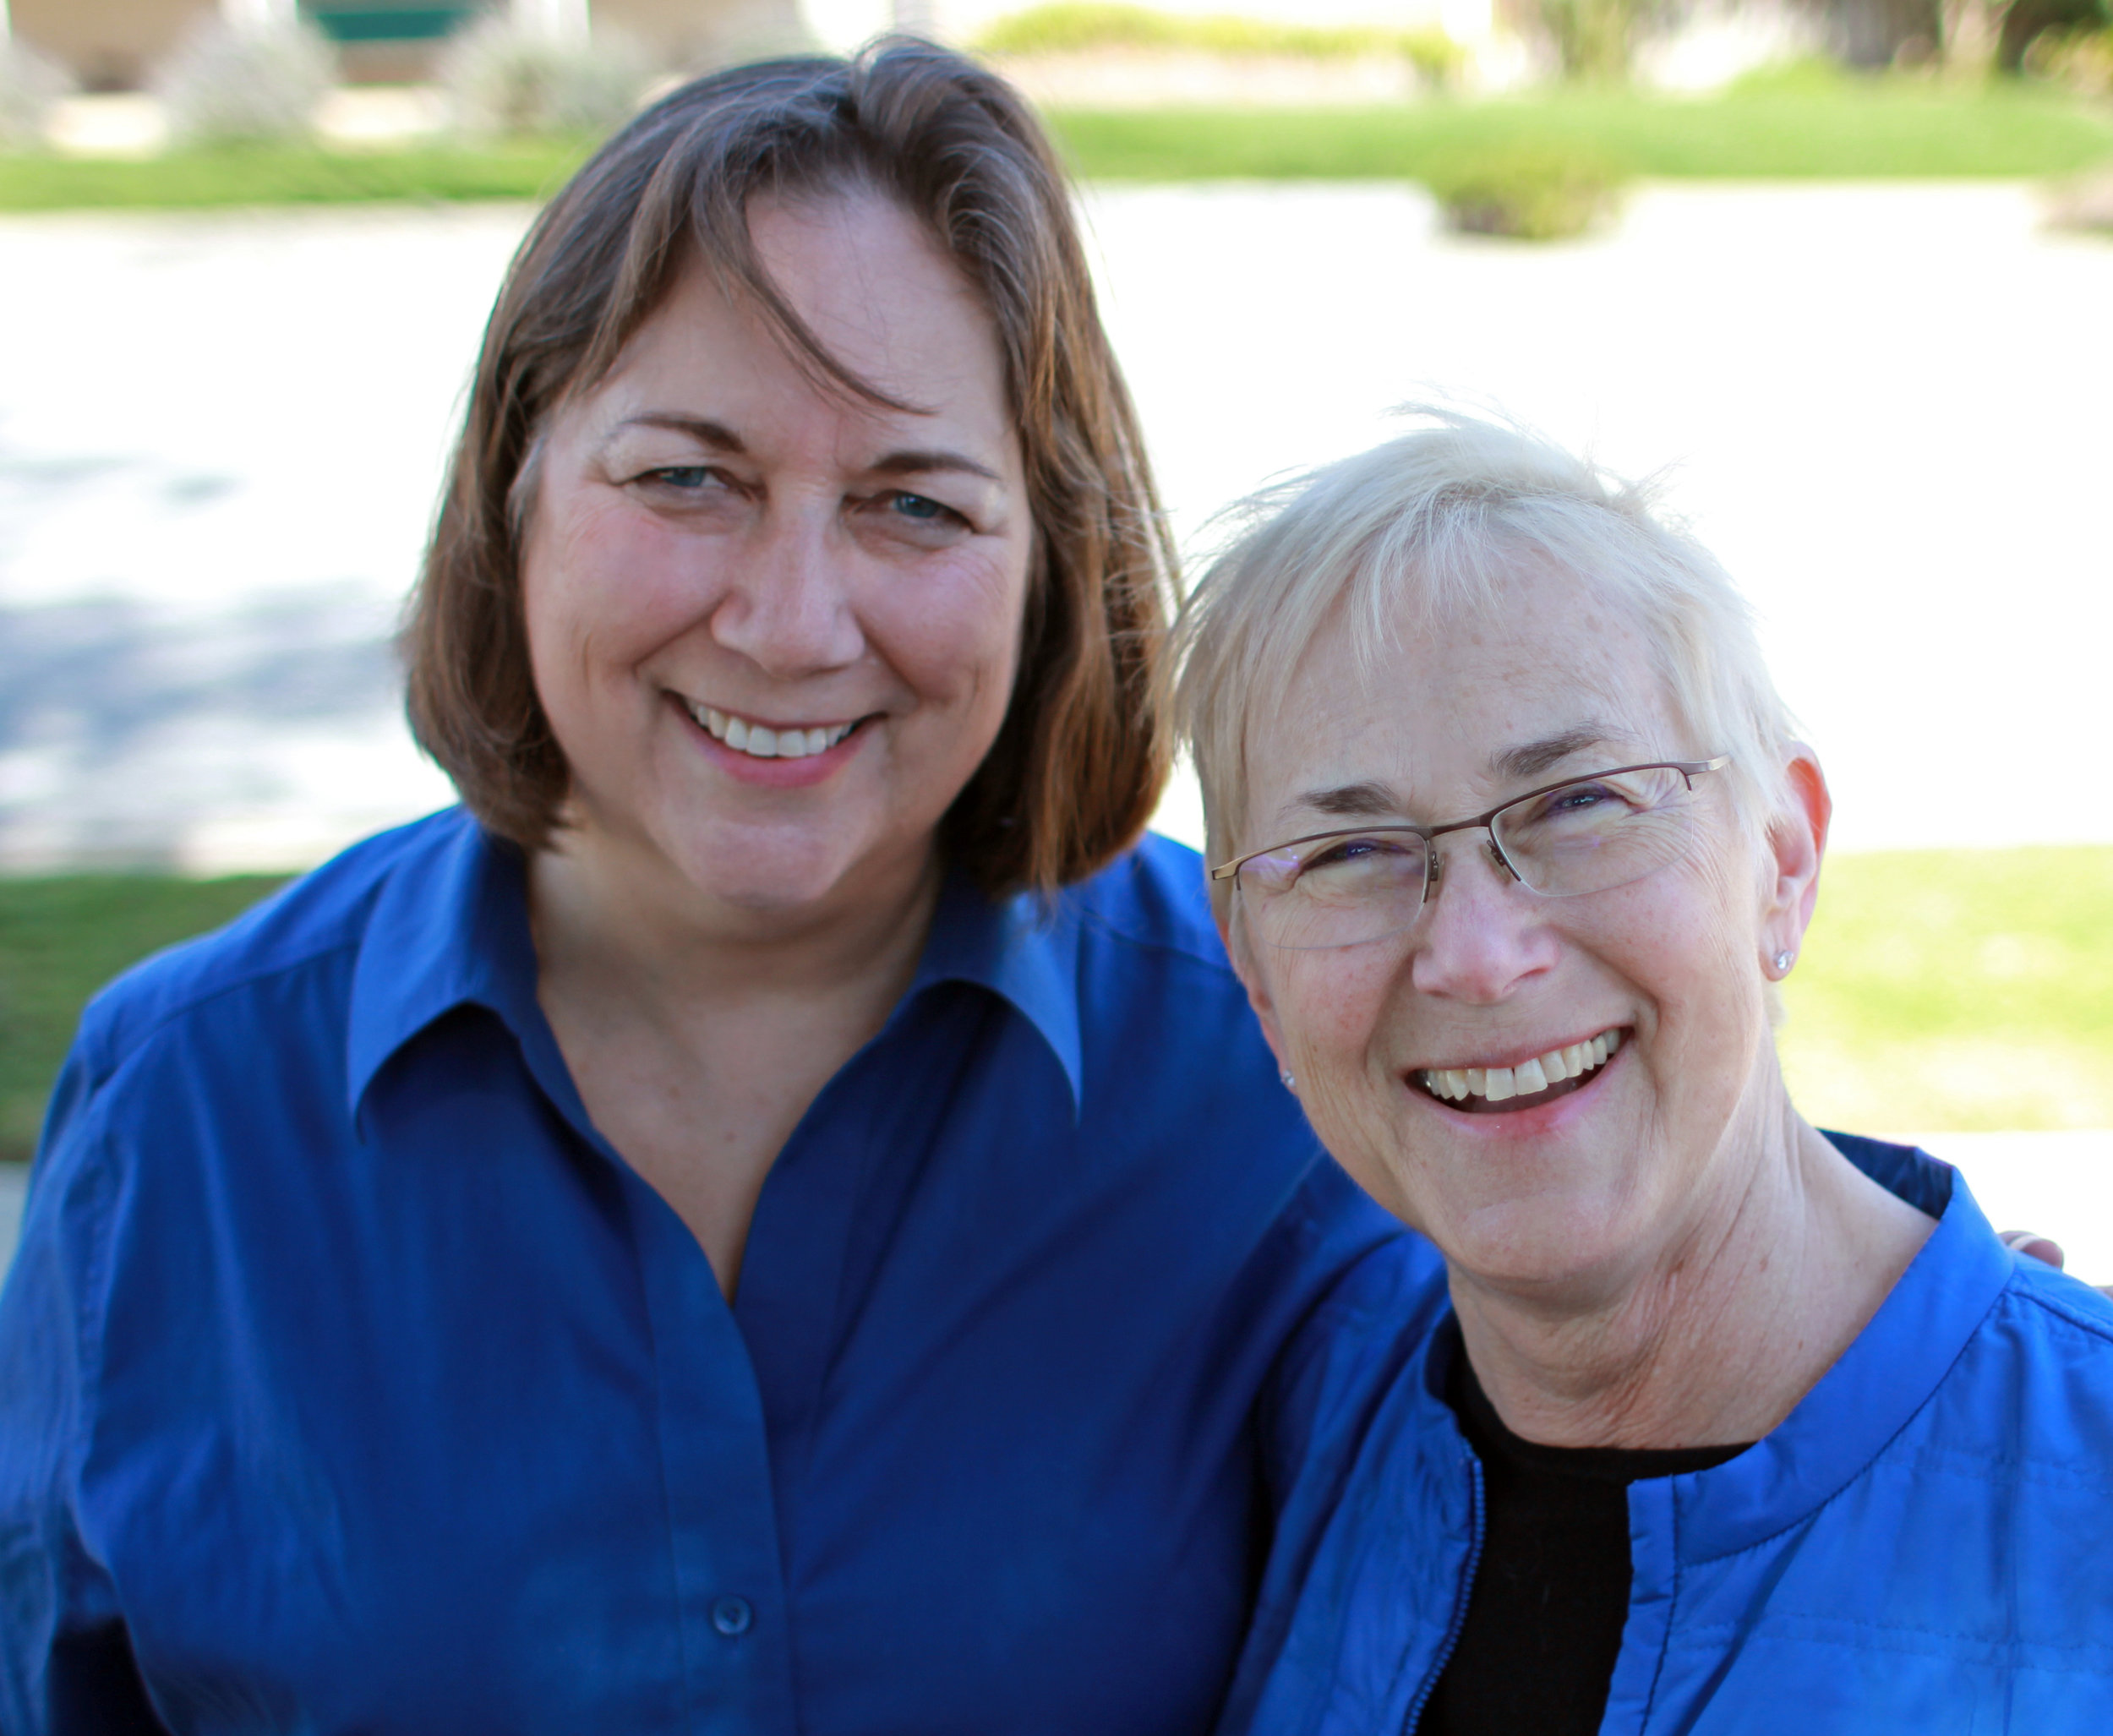 """""""I'm proud to endorse Pam, with her experience as a small business owner and school board trustee she would bring a lot to the council."""" ~ Judy"""